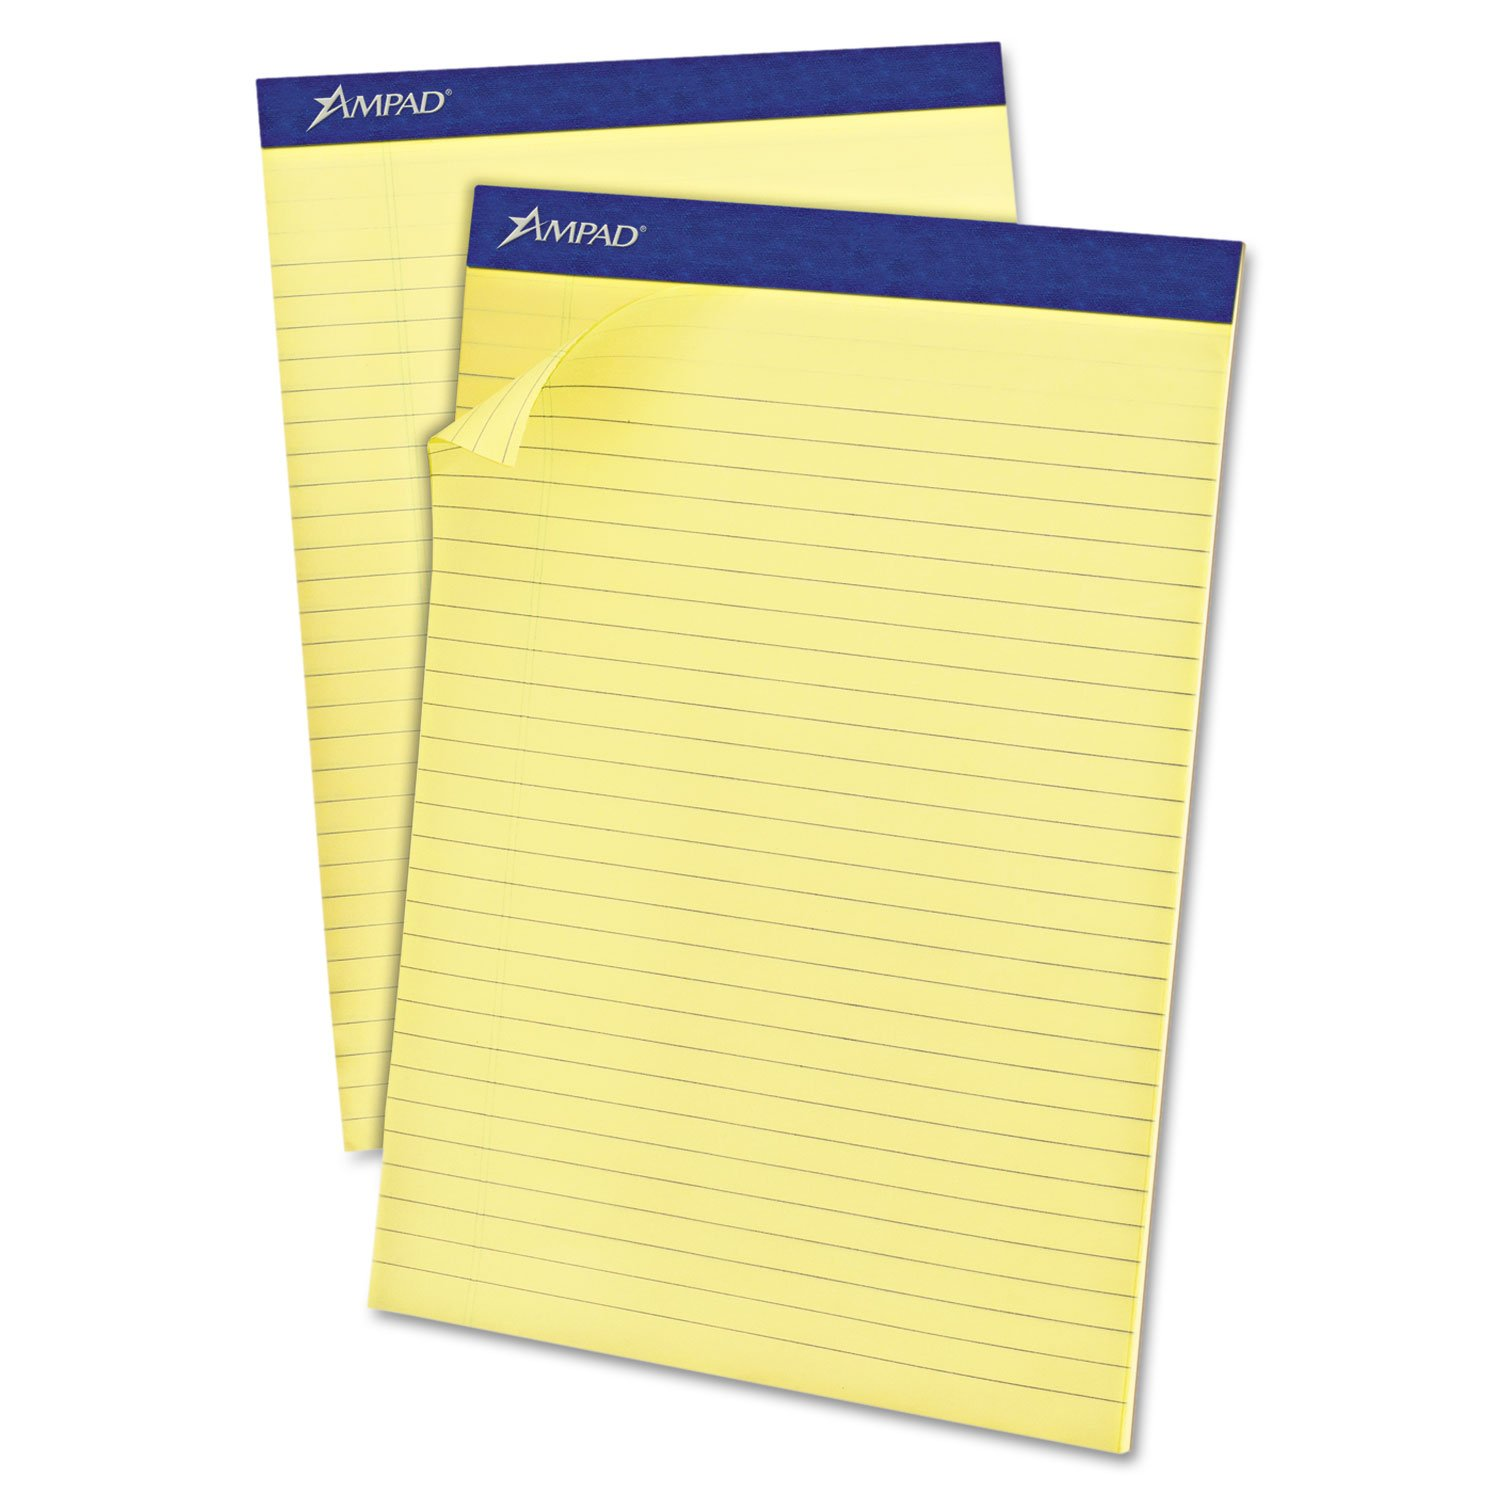 Ampad 20270 Basic Writing Pad, Slot, Legal Ruled, 8-1/2-Inch x11-3/4-Inch, Canary